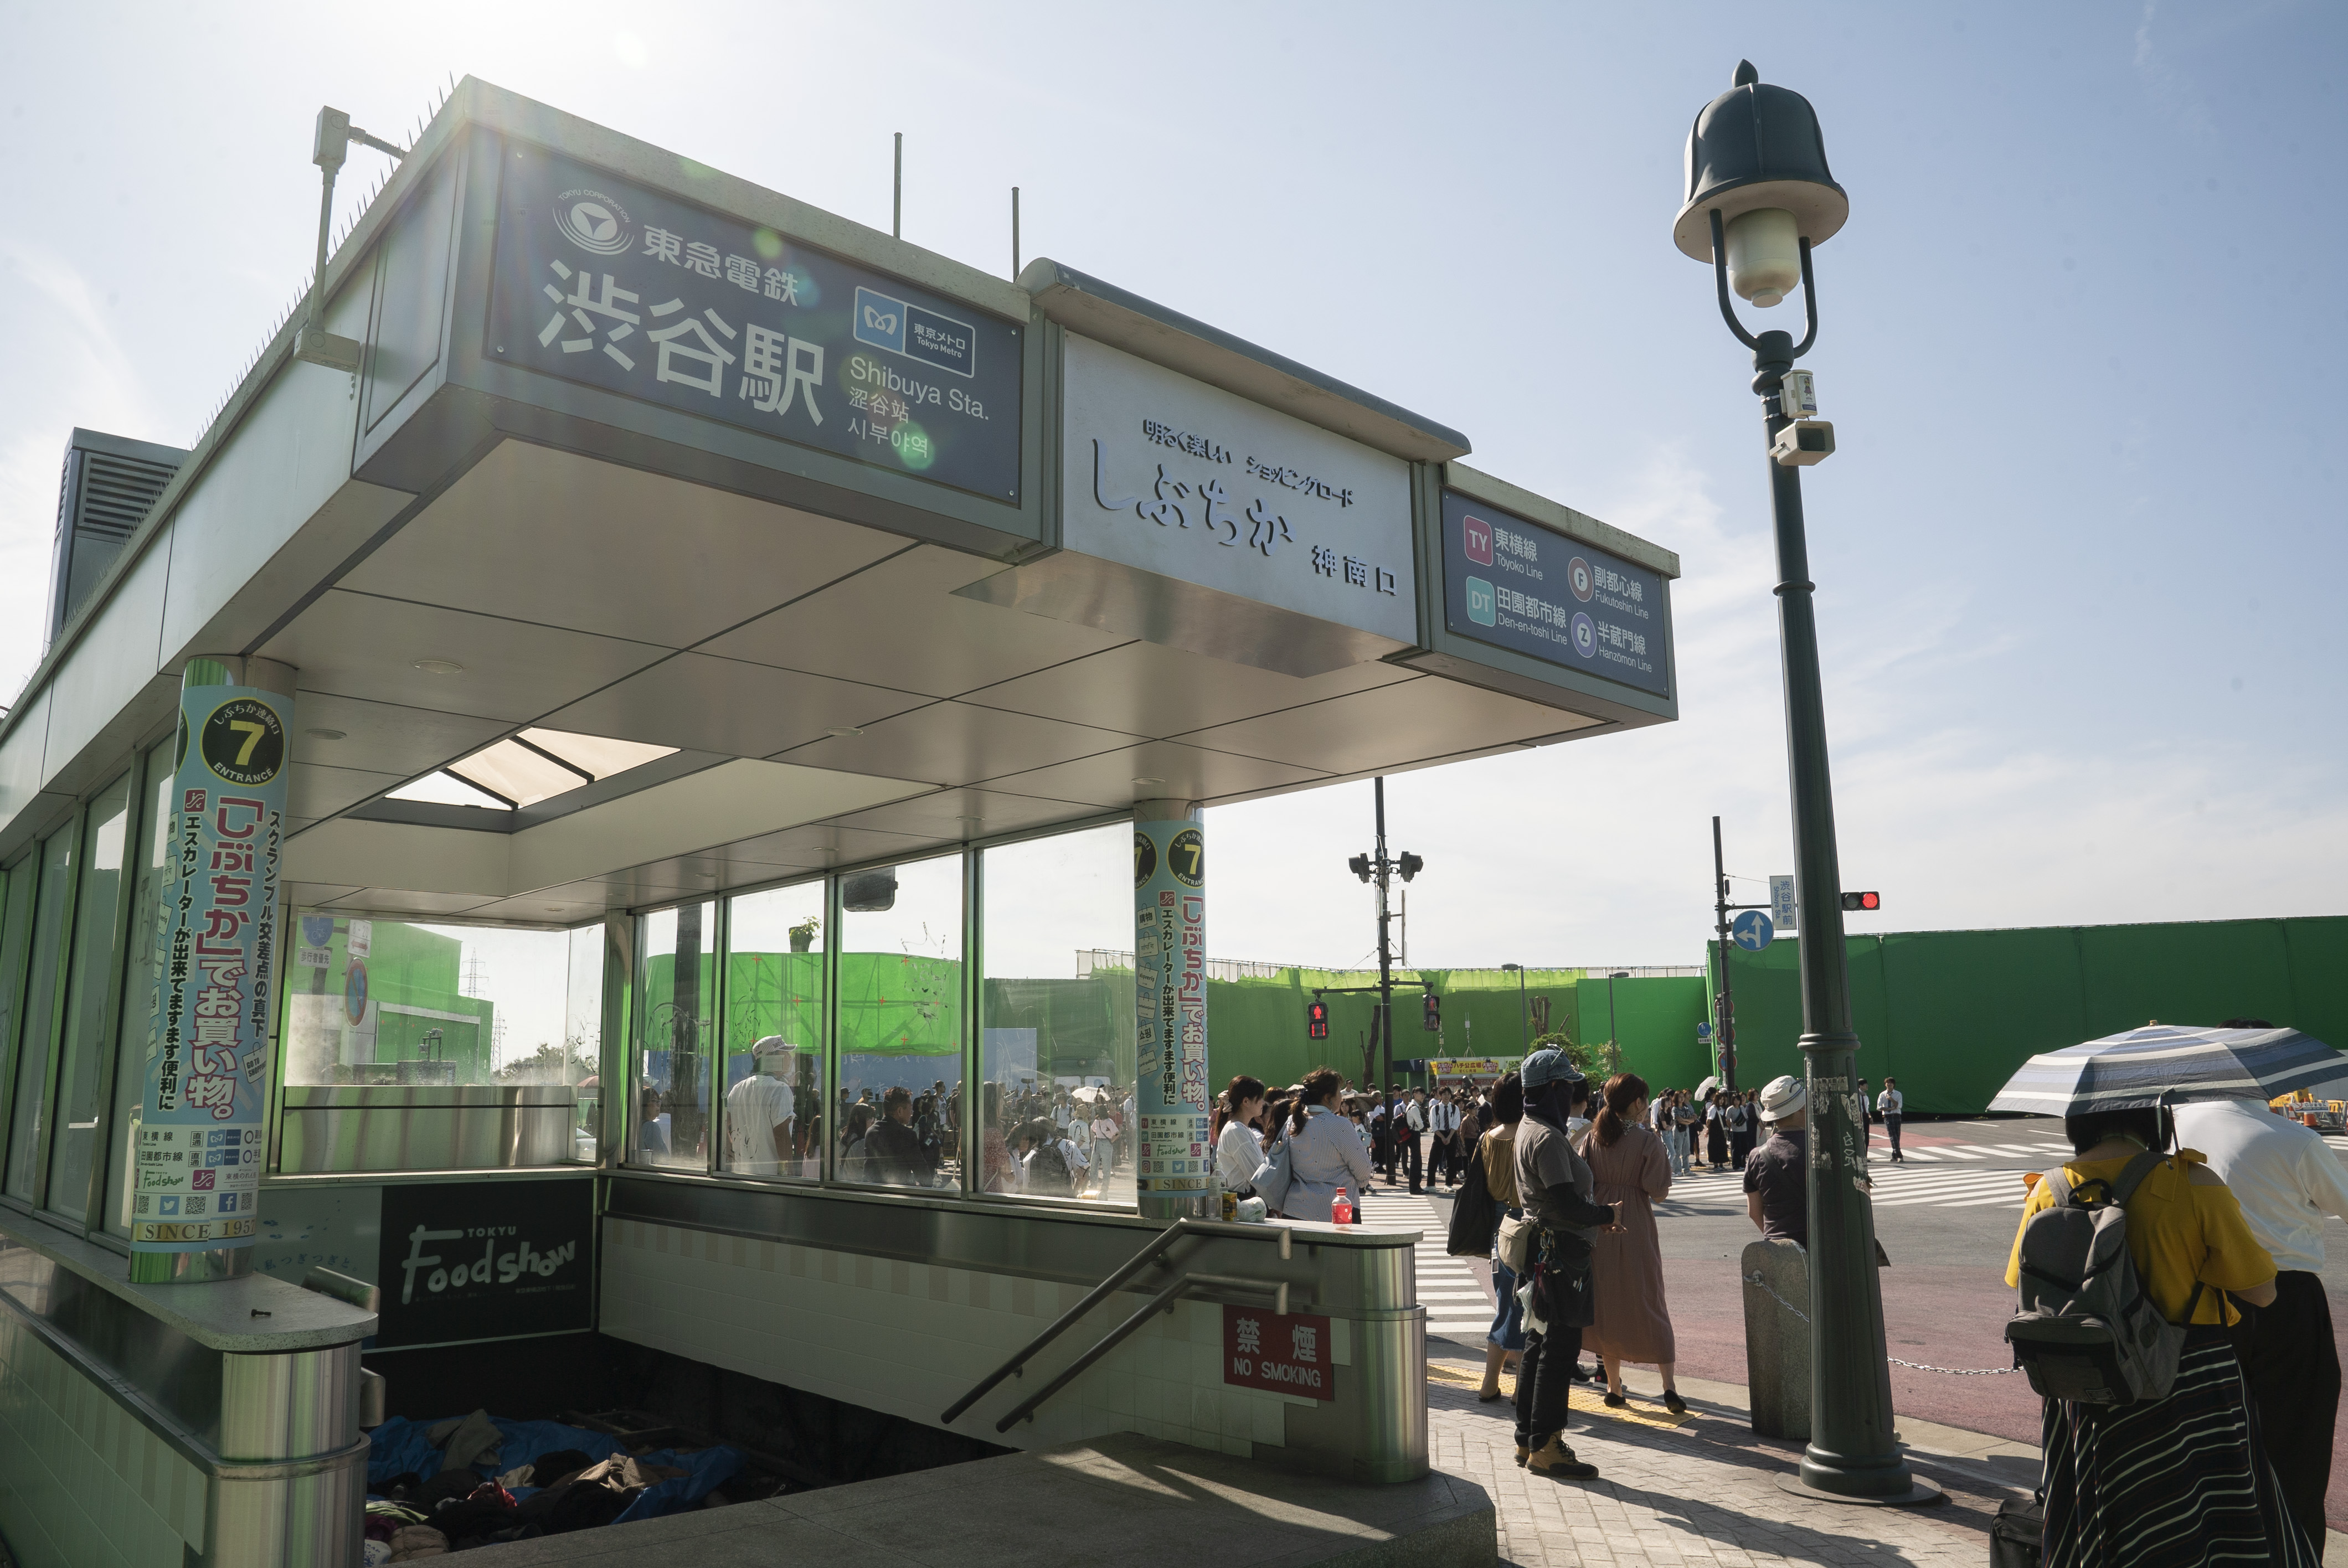 The outdoor set for Alice in Borderland in Ashikaga city, 100 km away from the actual Shibuya Station